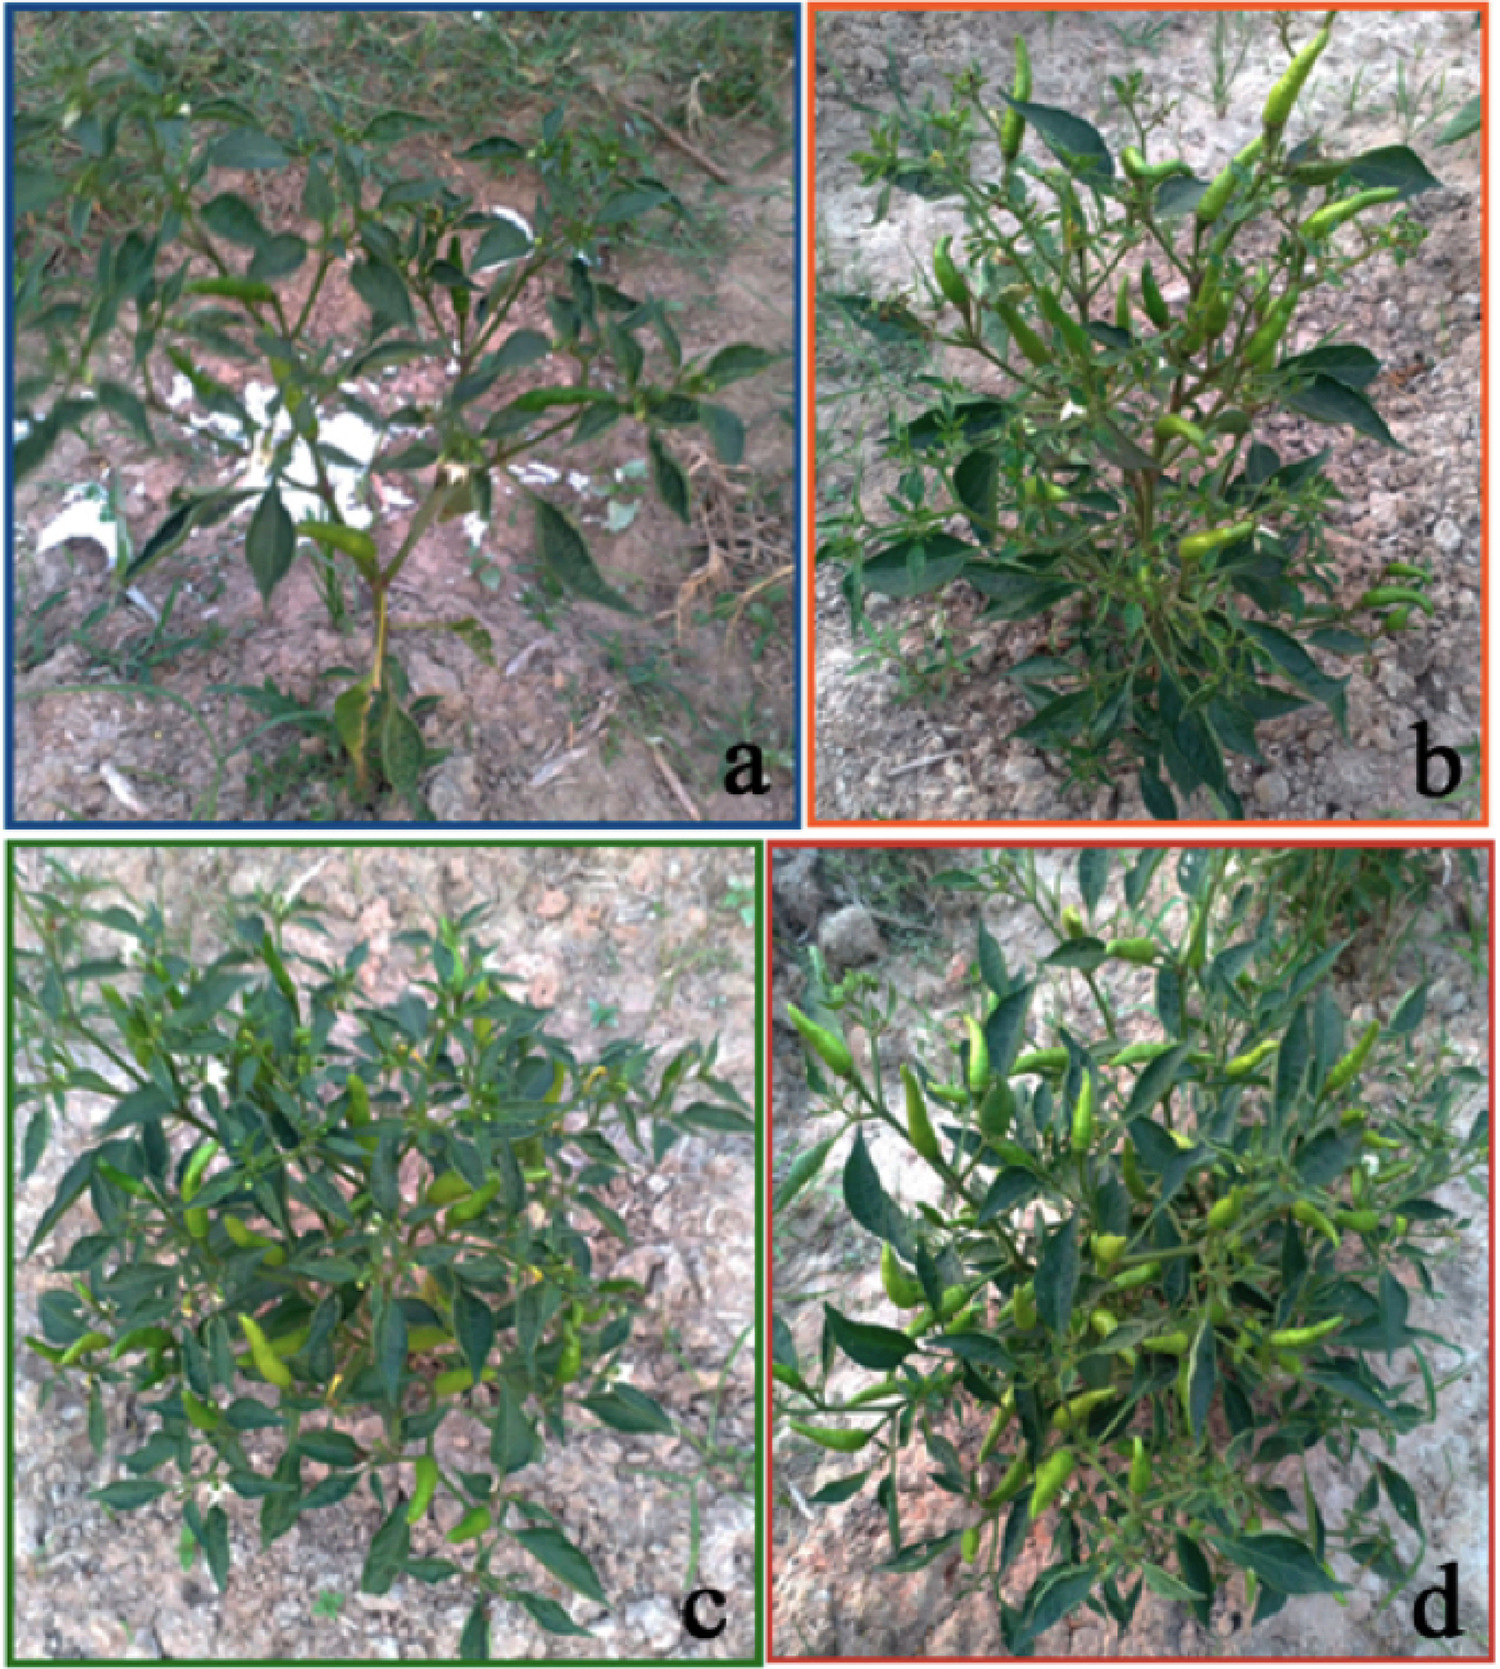 Nano pyrite (FeS2) root priming enhances chilli and marigold